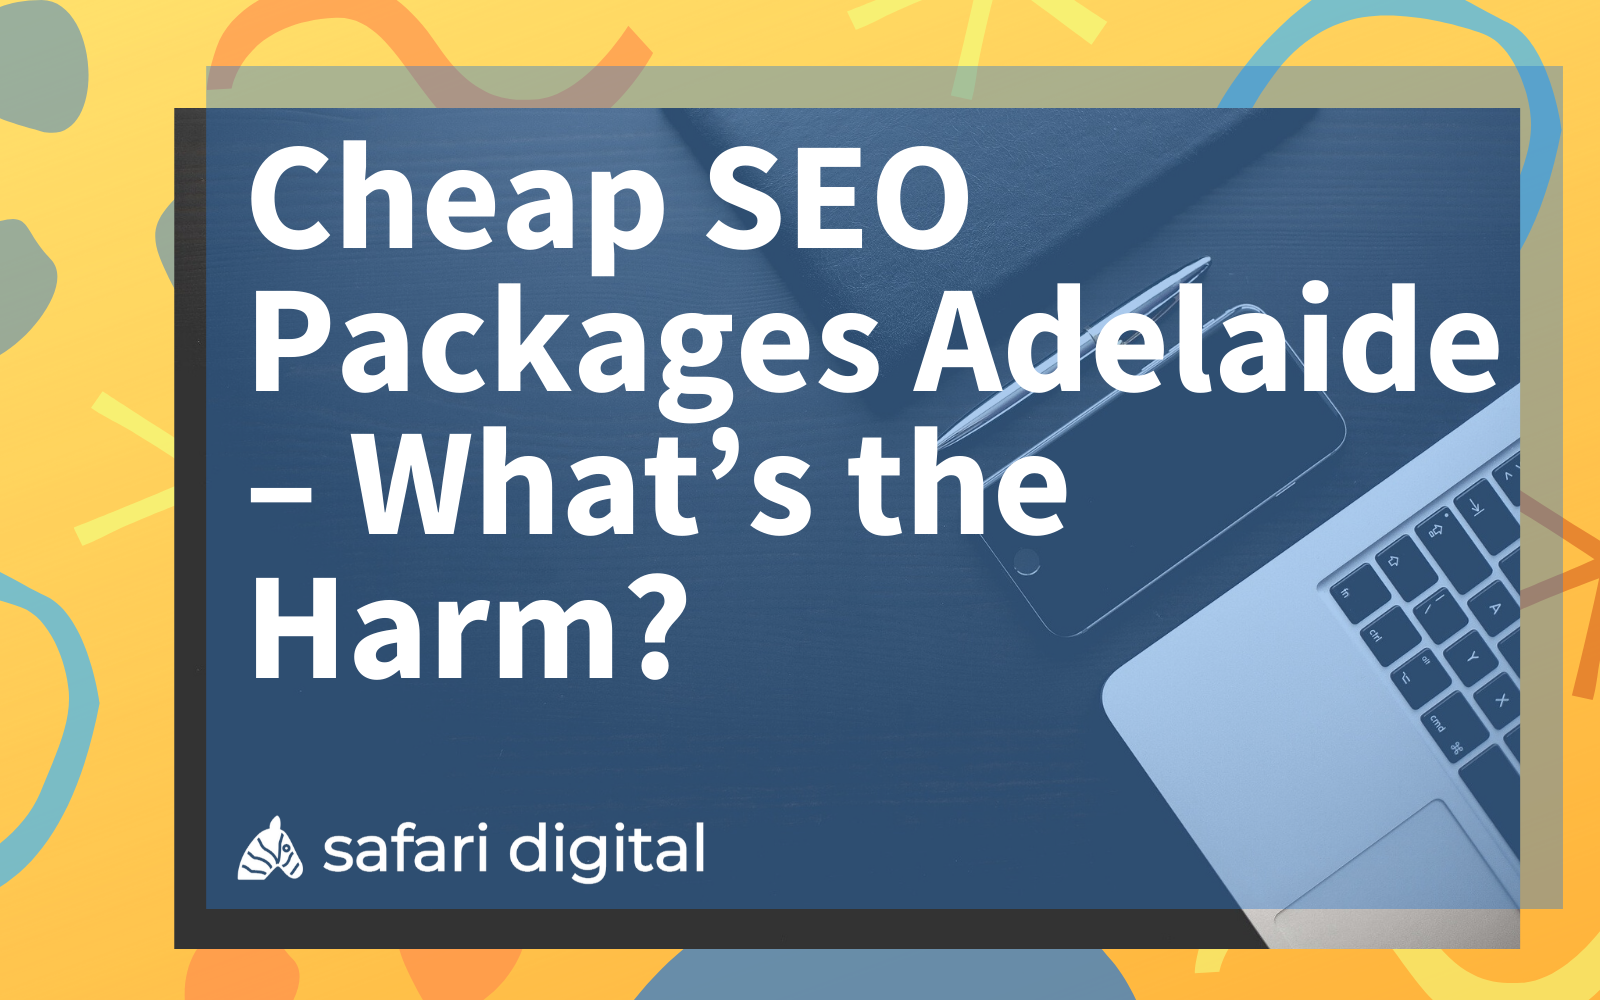 Cheap SEO Packages Adelaide Blog Cover Image Large